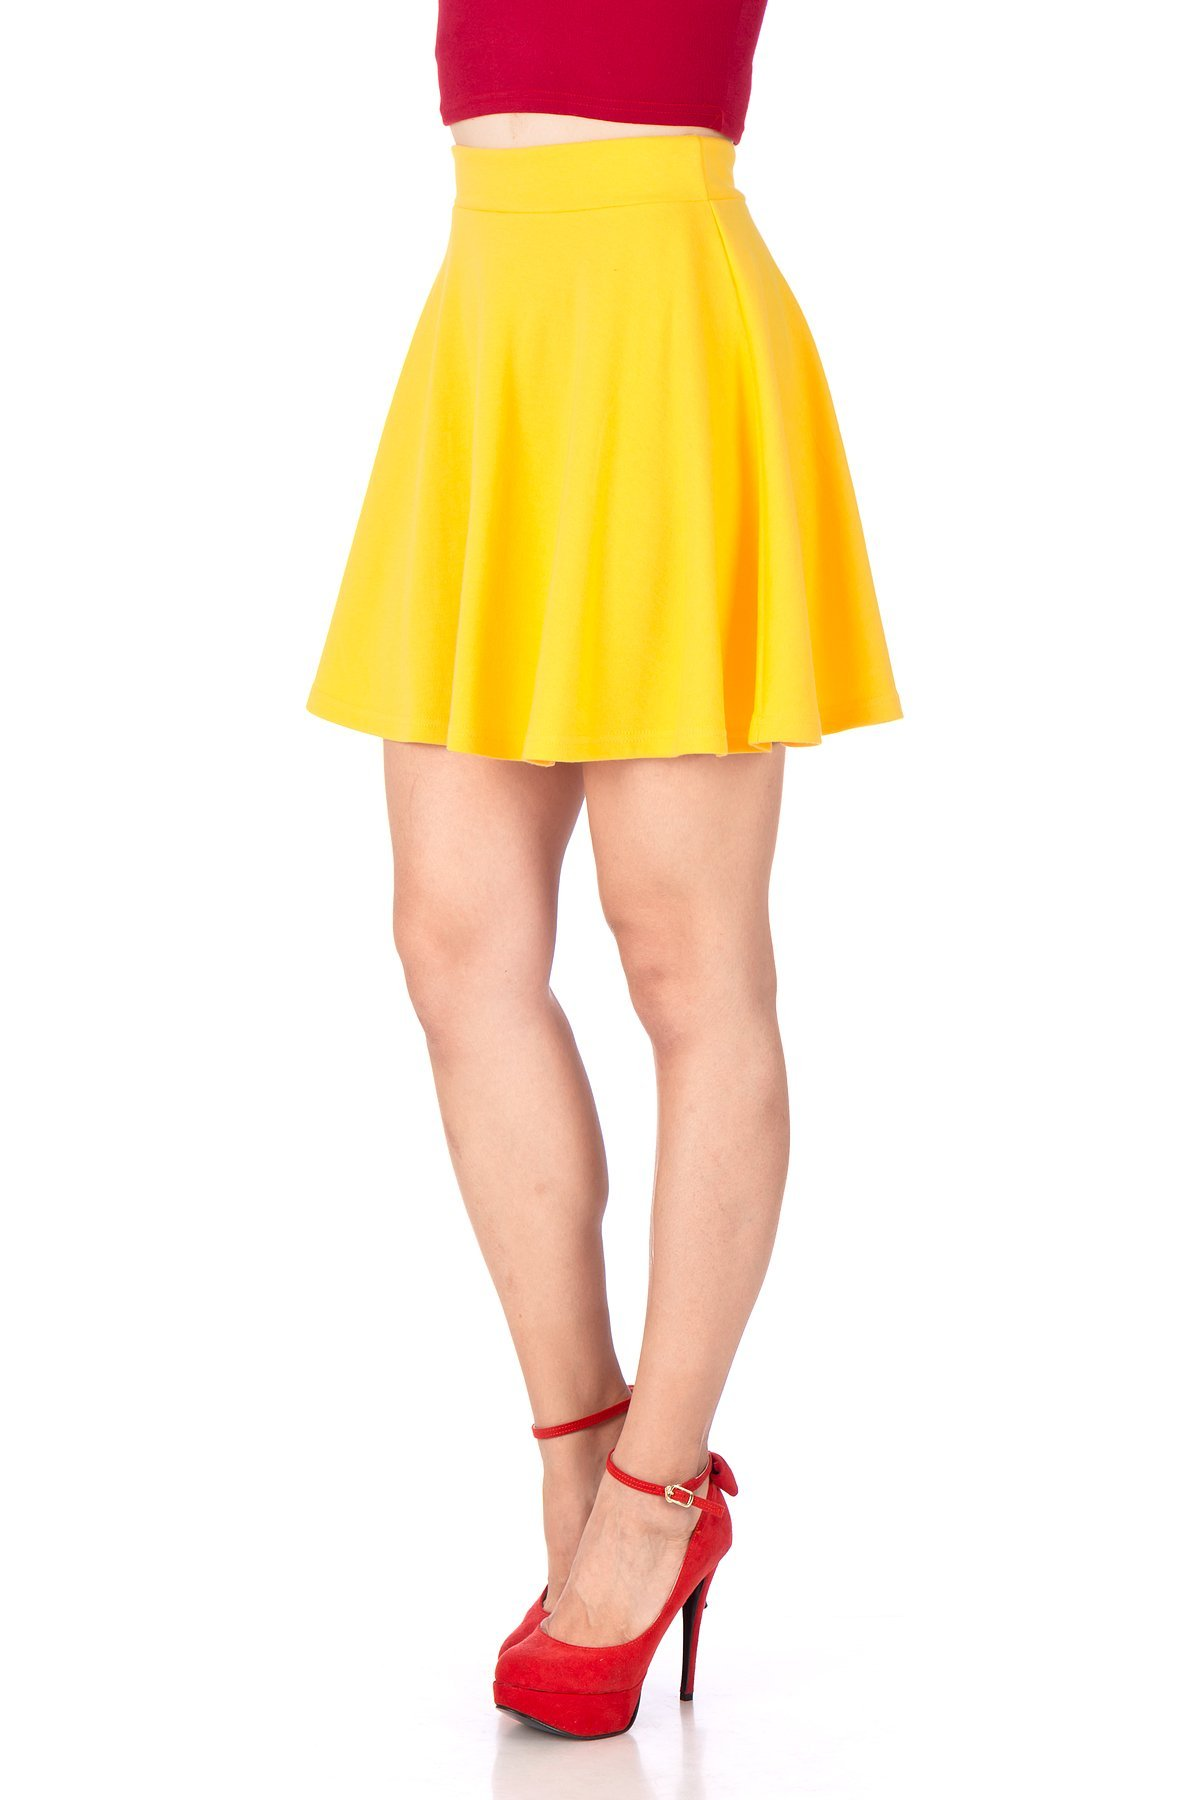 Basic Solid Stretchy Cotton High Waist A line Flared Skater Mini Skirt Yellow 06